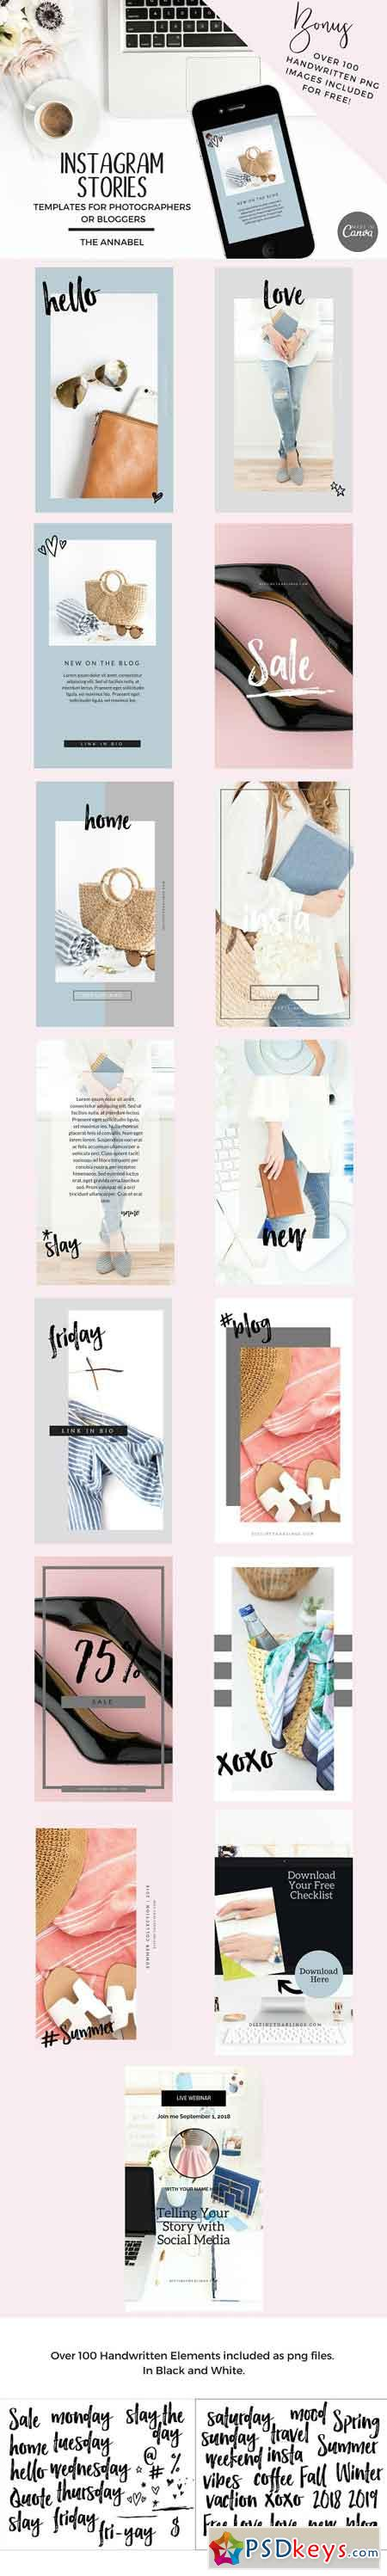 Canva Instagram Stories Template 2709473